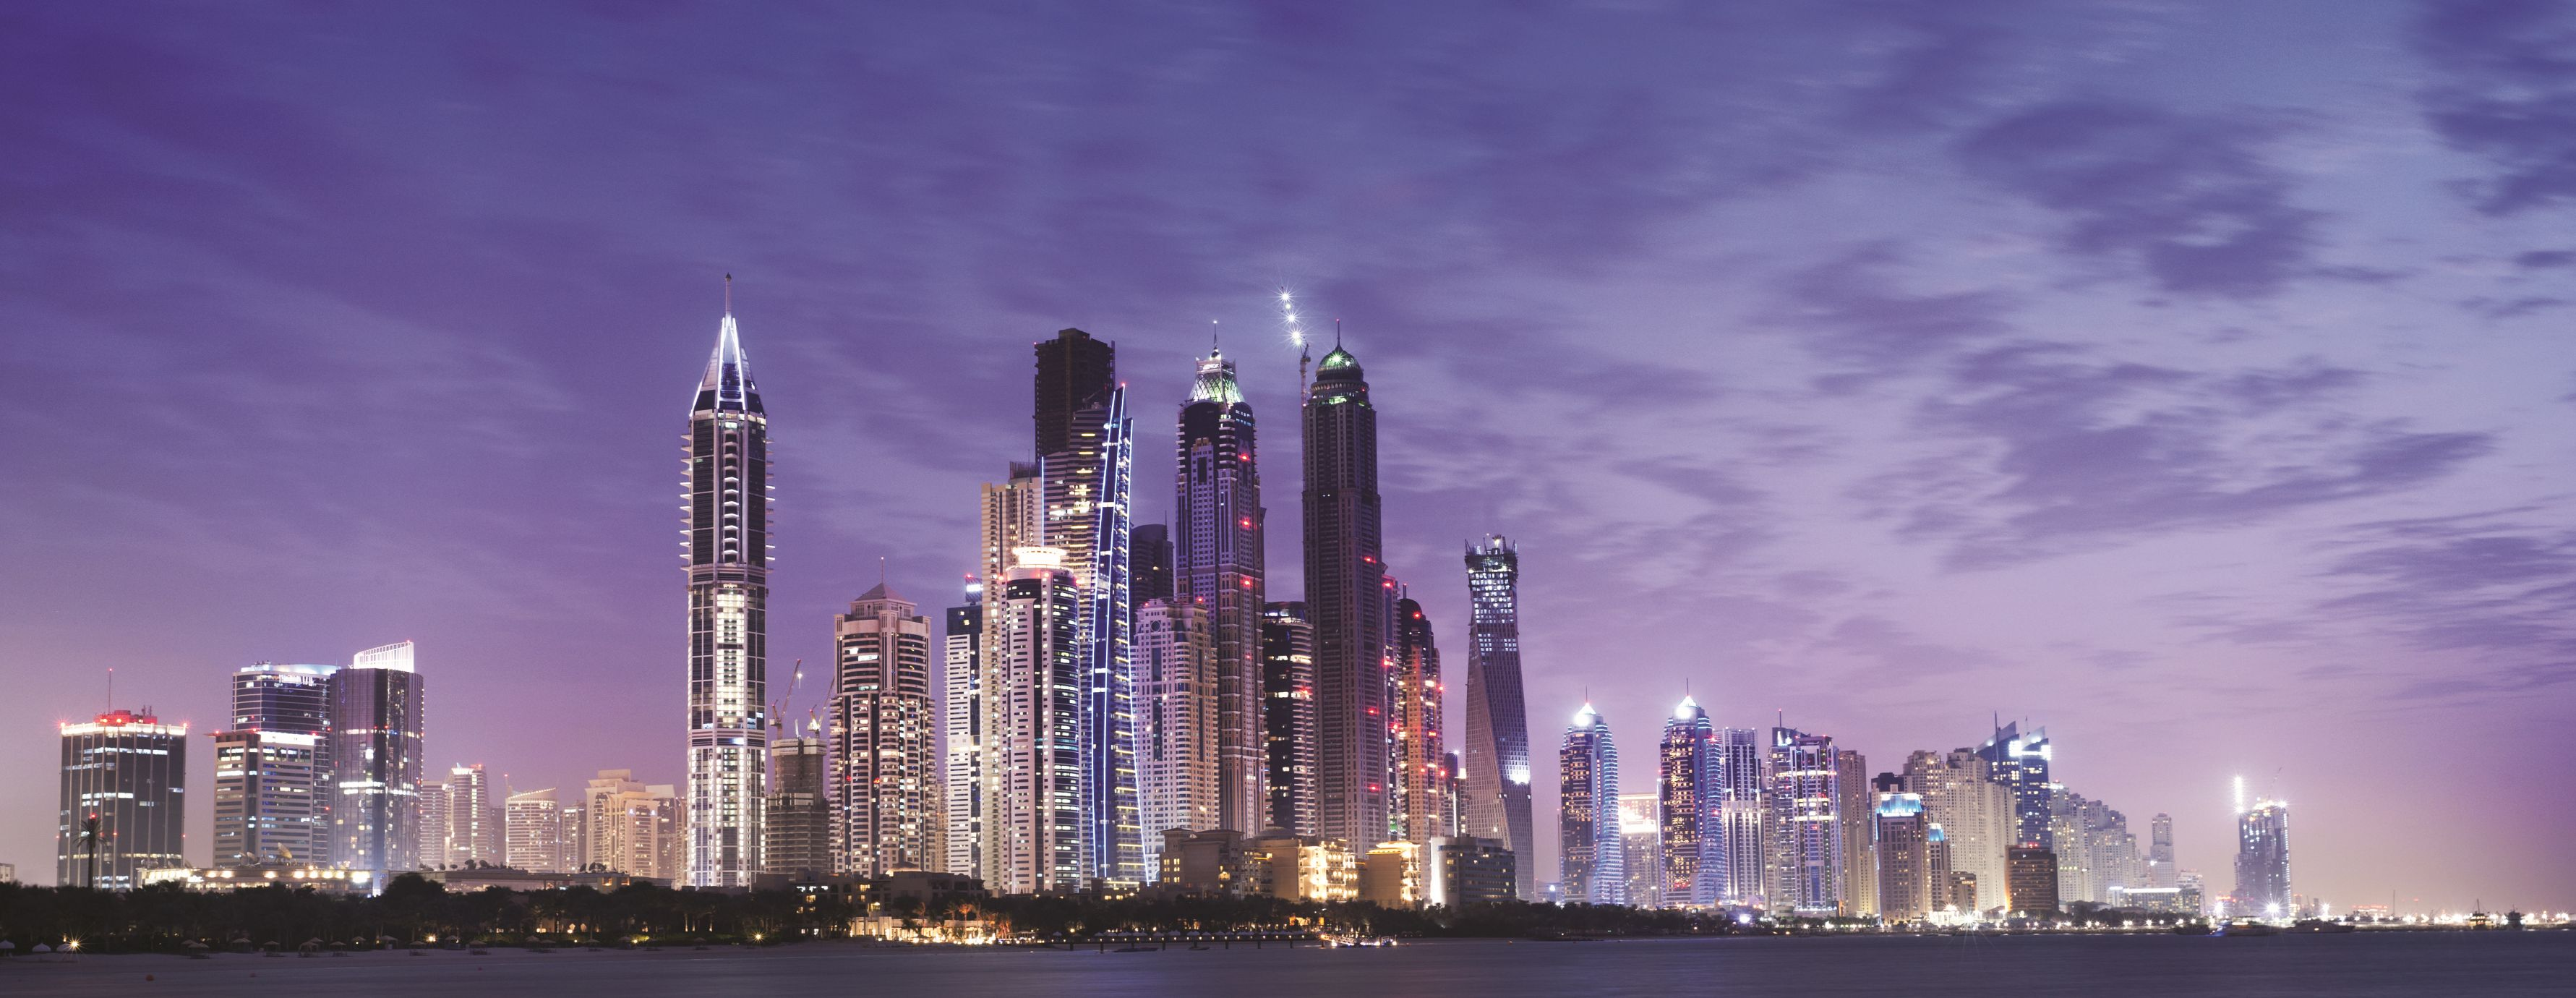 Sand Dunes and Concrete: Operating In The UAE